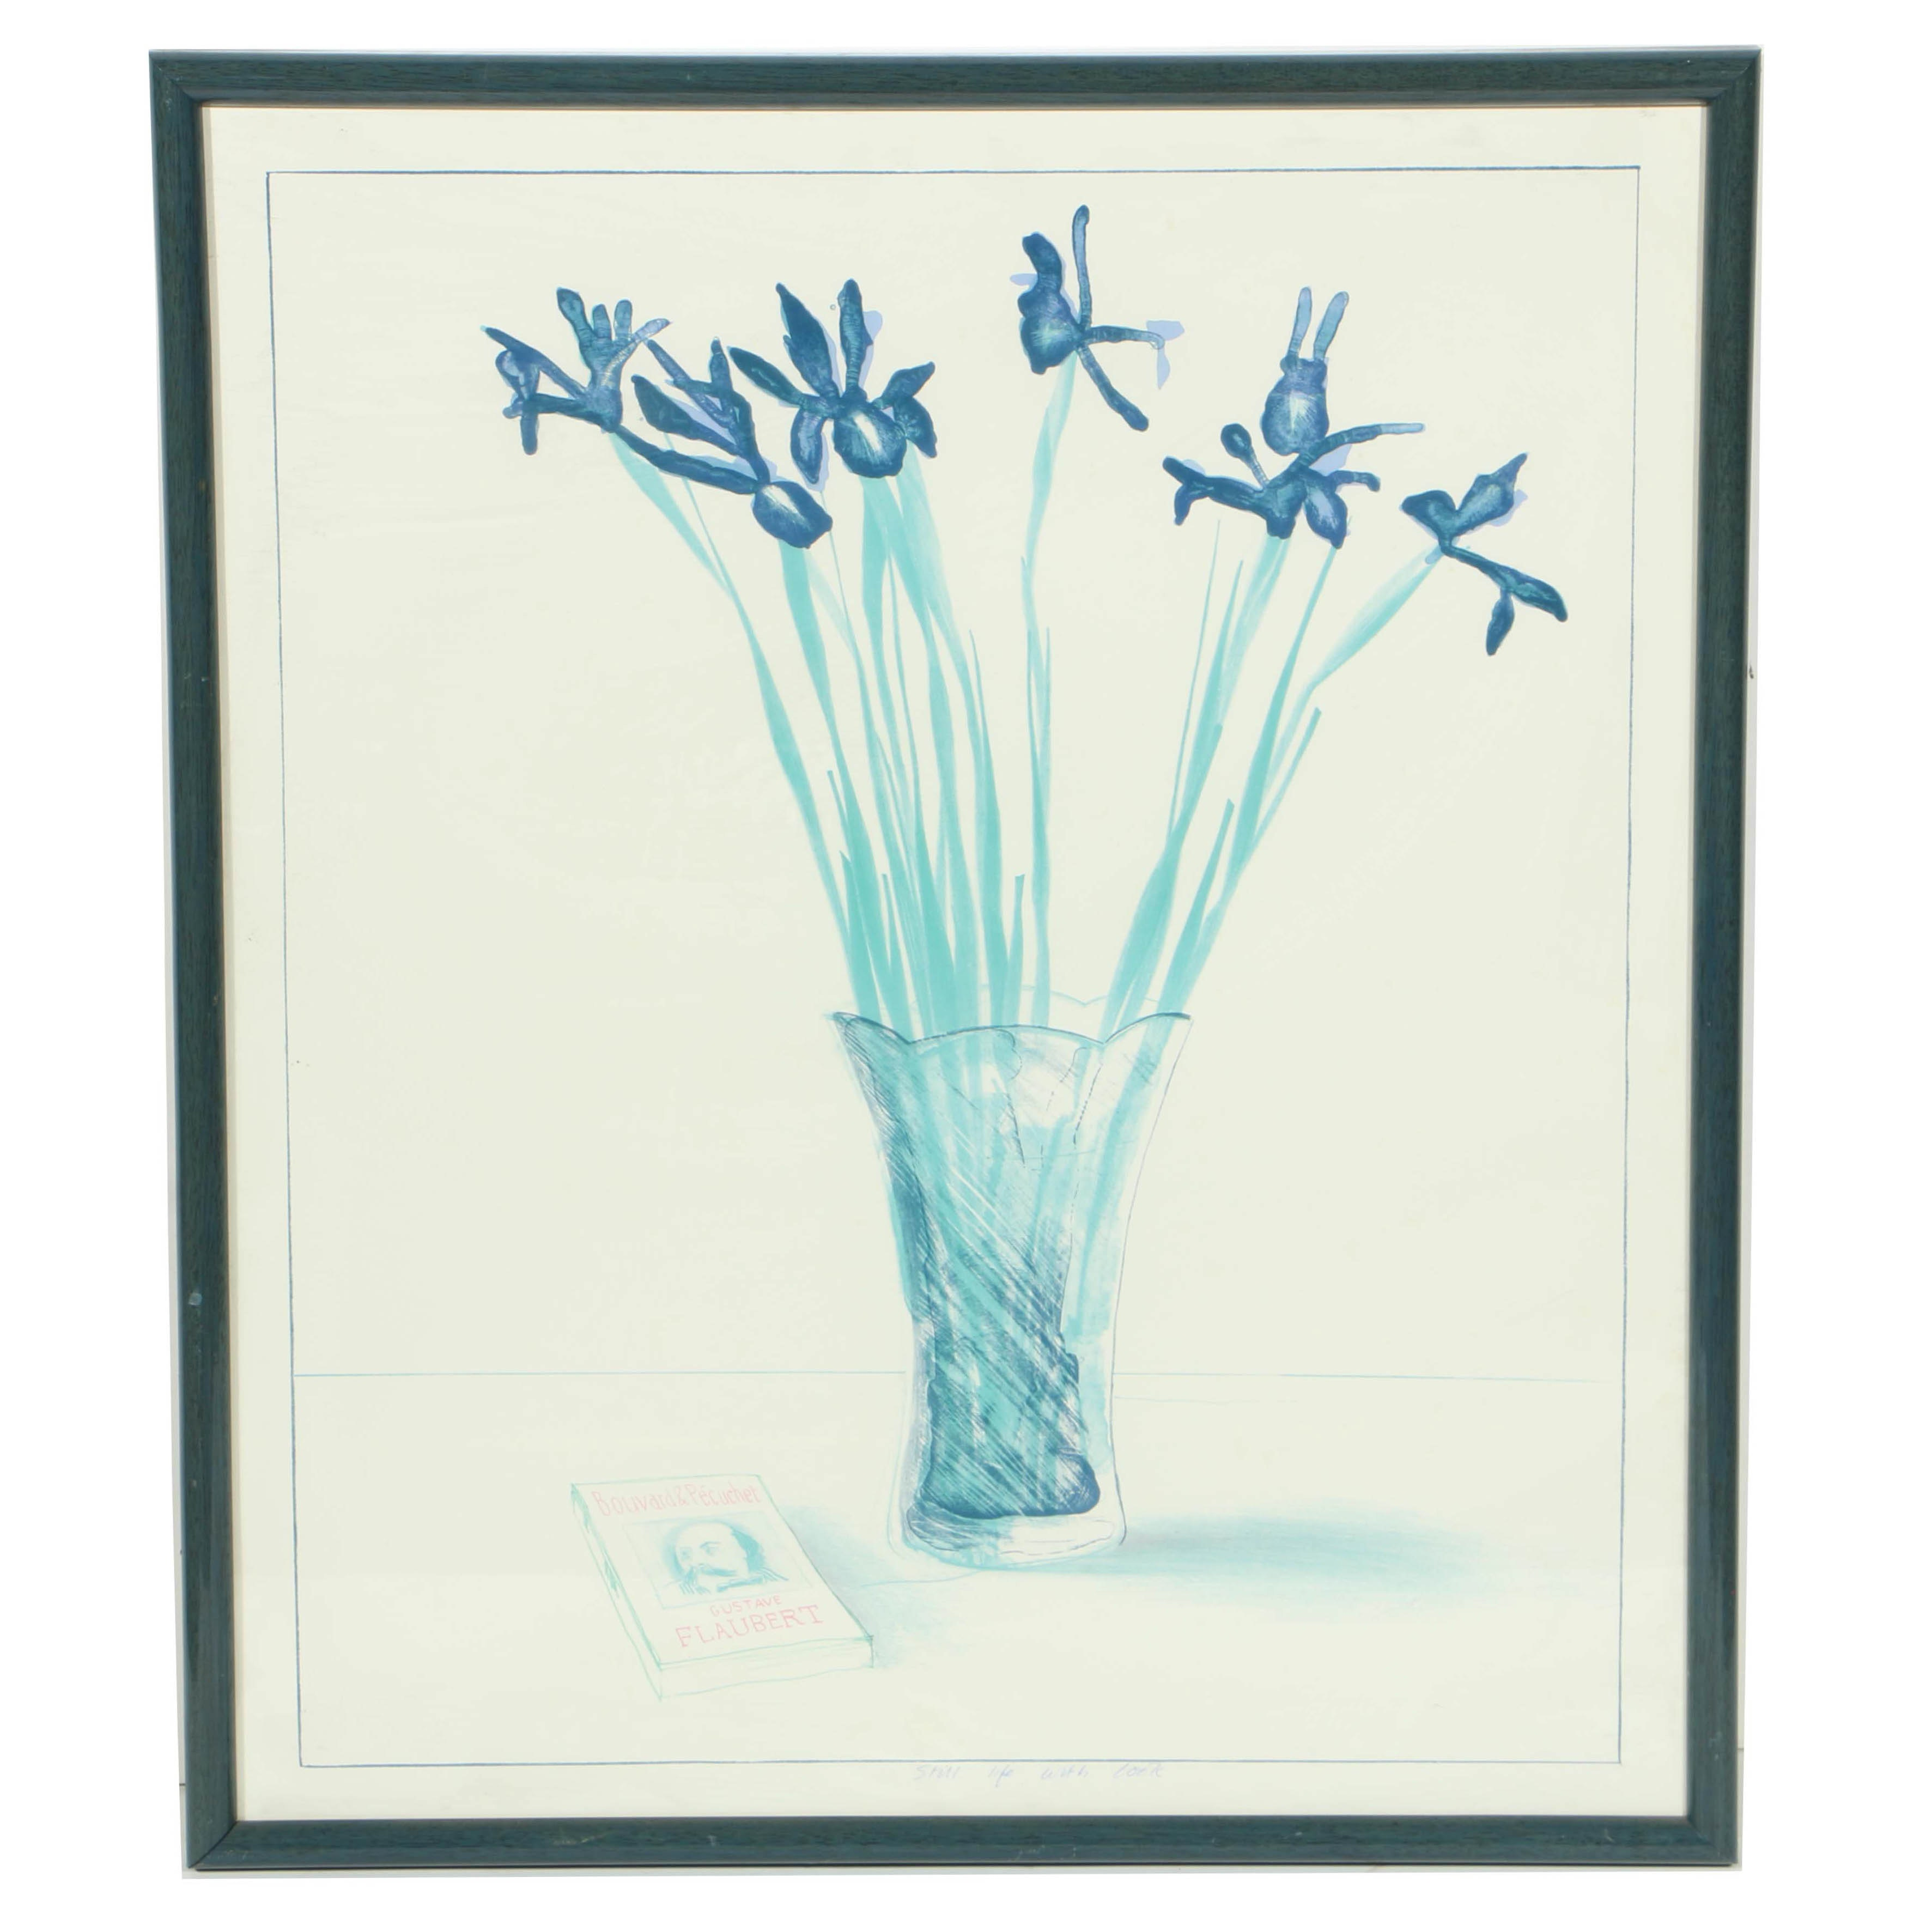 """Offset Lithograph on Paper After David Hockney's """"Still Life with Book"""""""